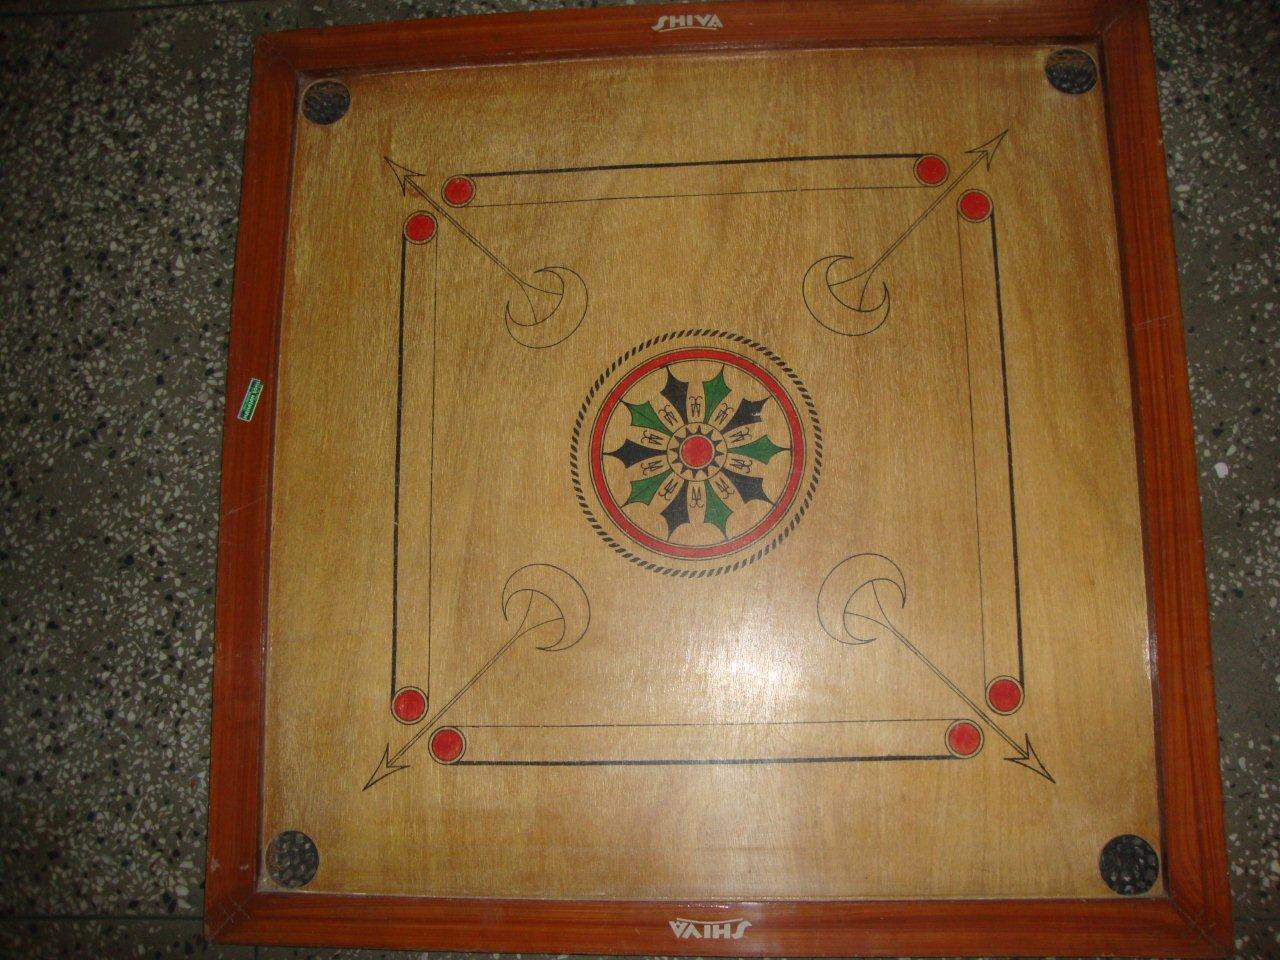 #carrom #childhoodgames #india